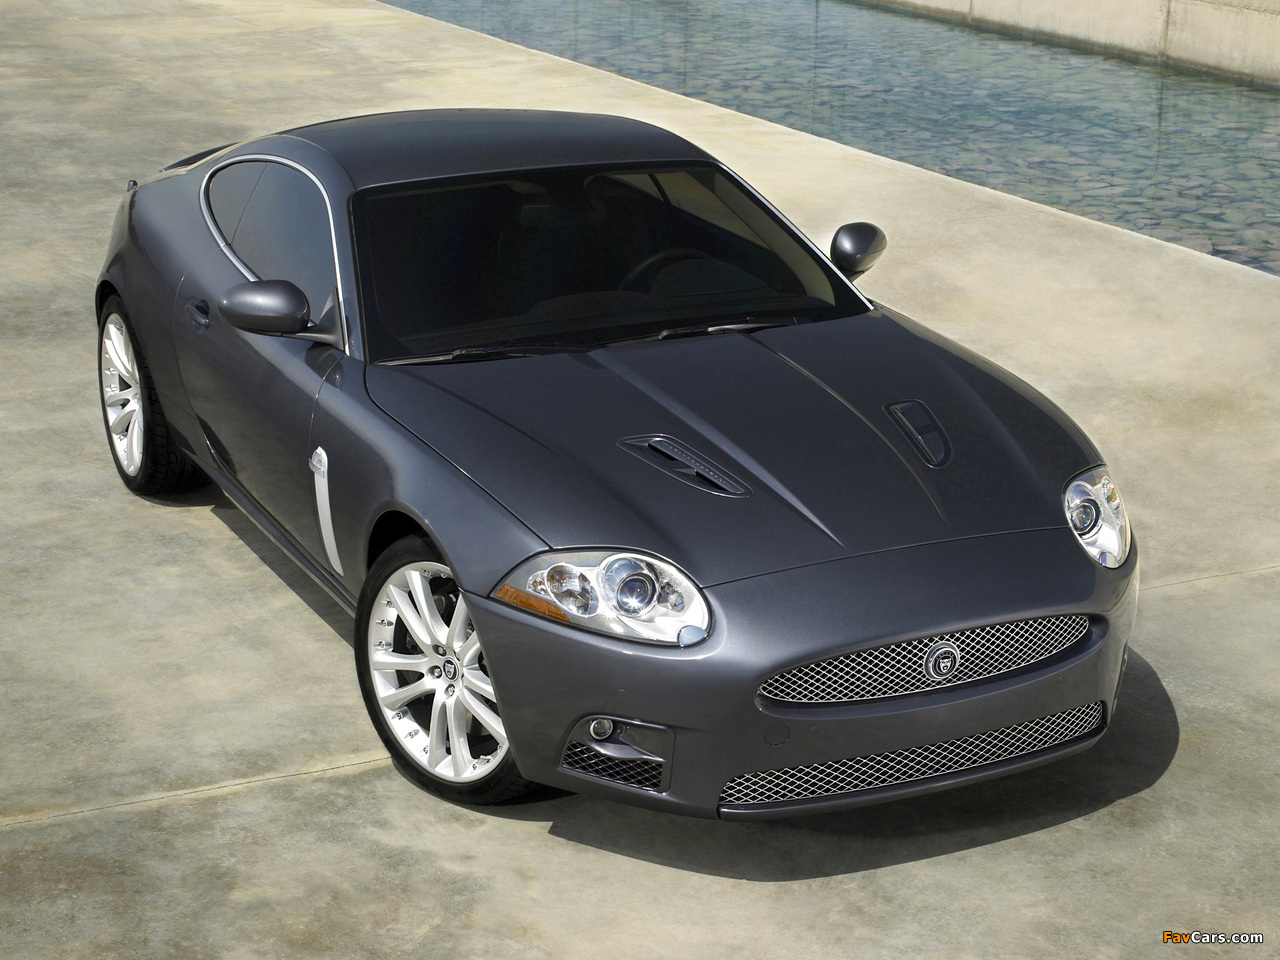 Jaguar Xkr Coupe 2007 09 Wallpapers 1280x960